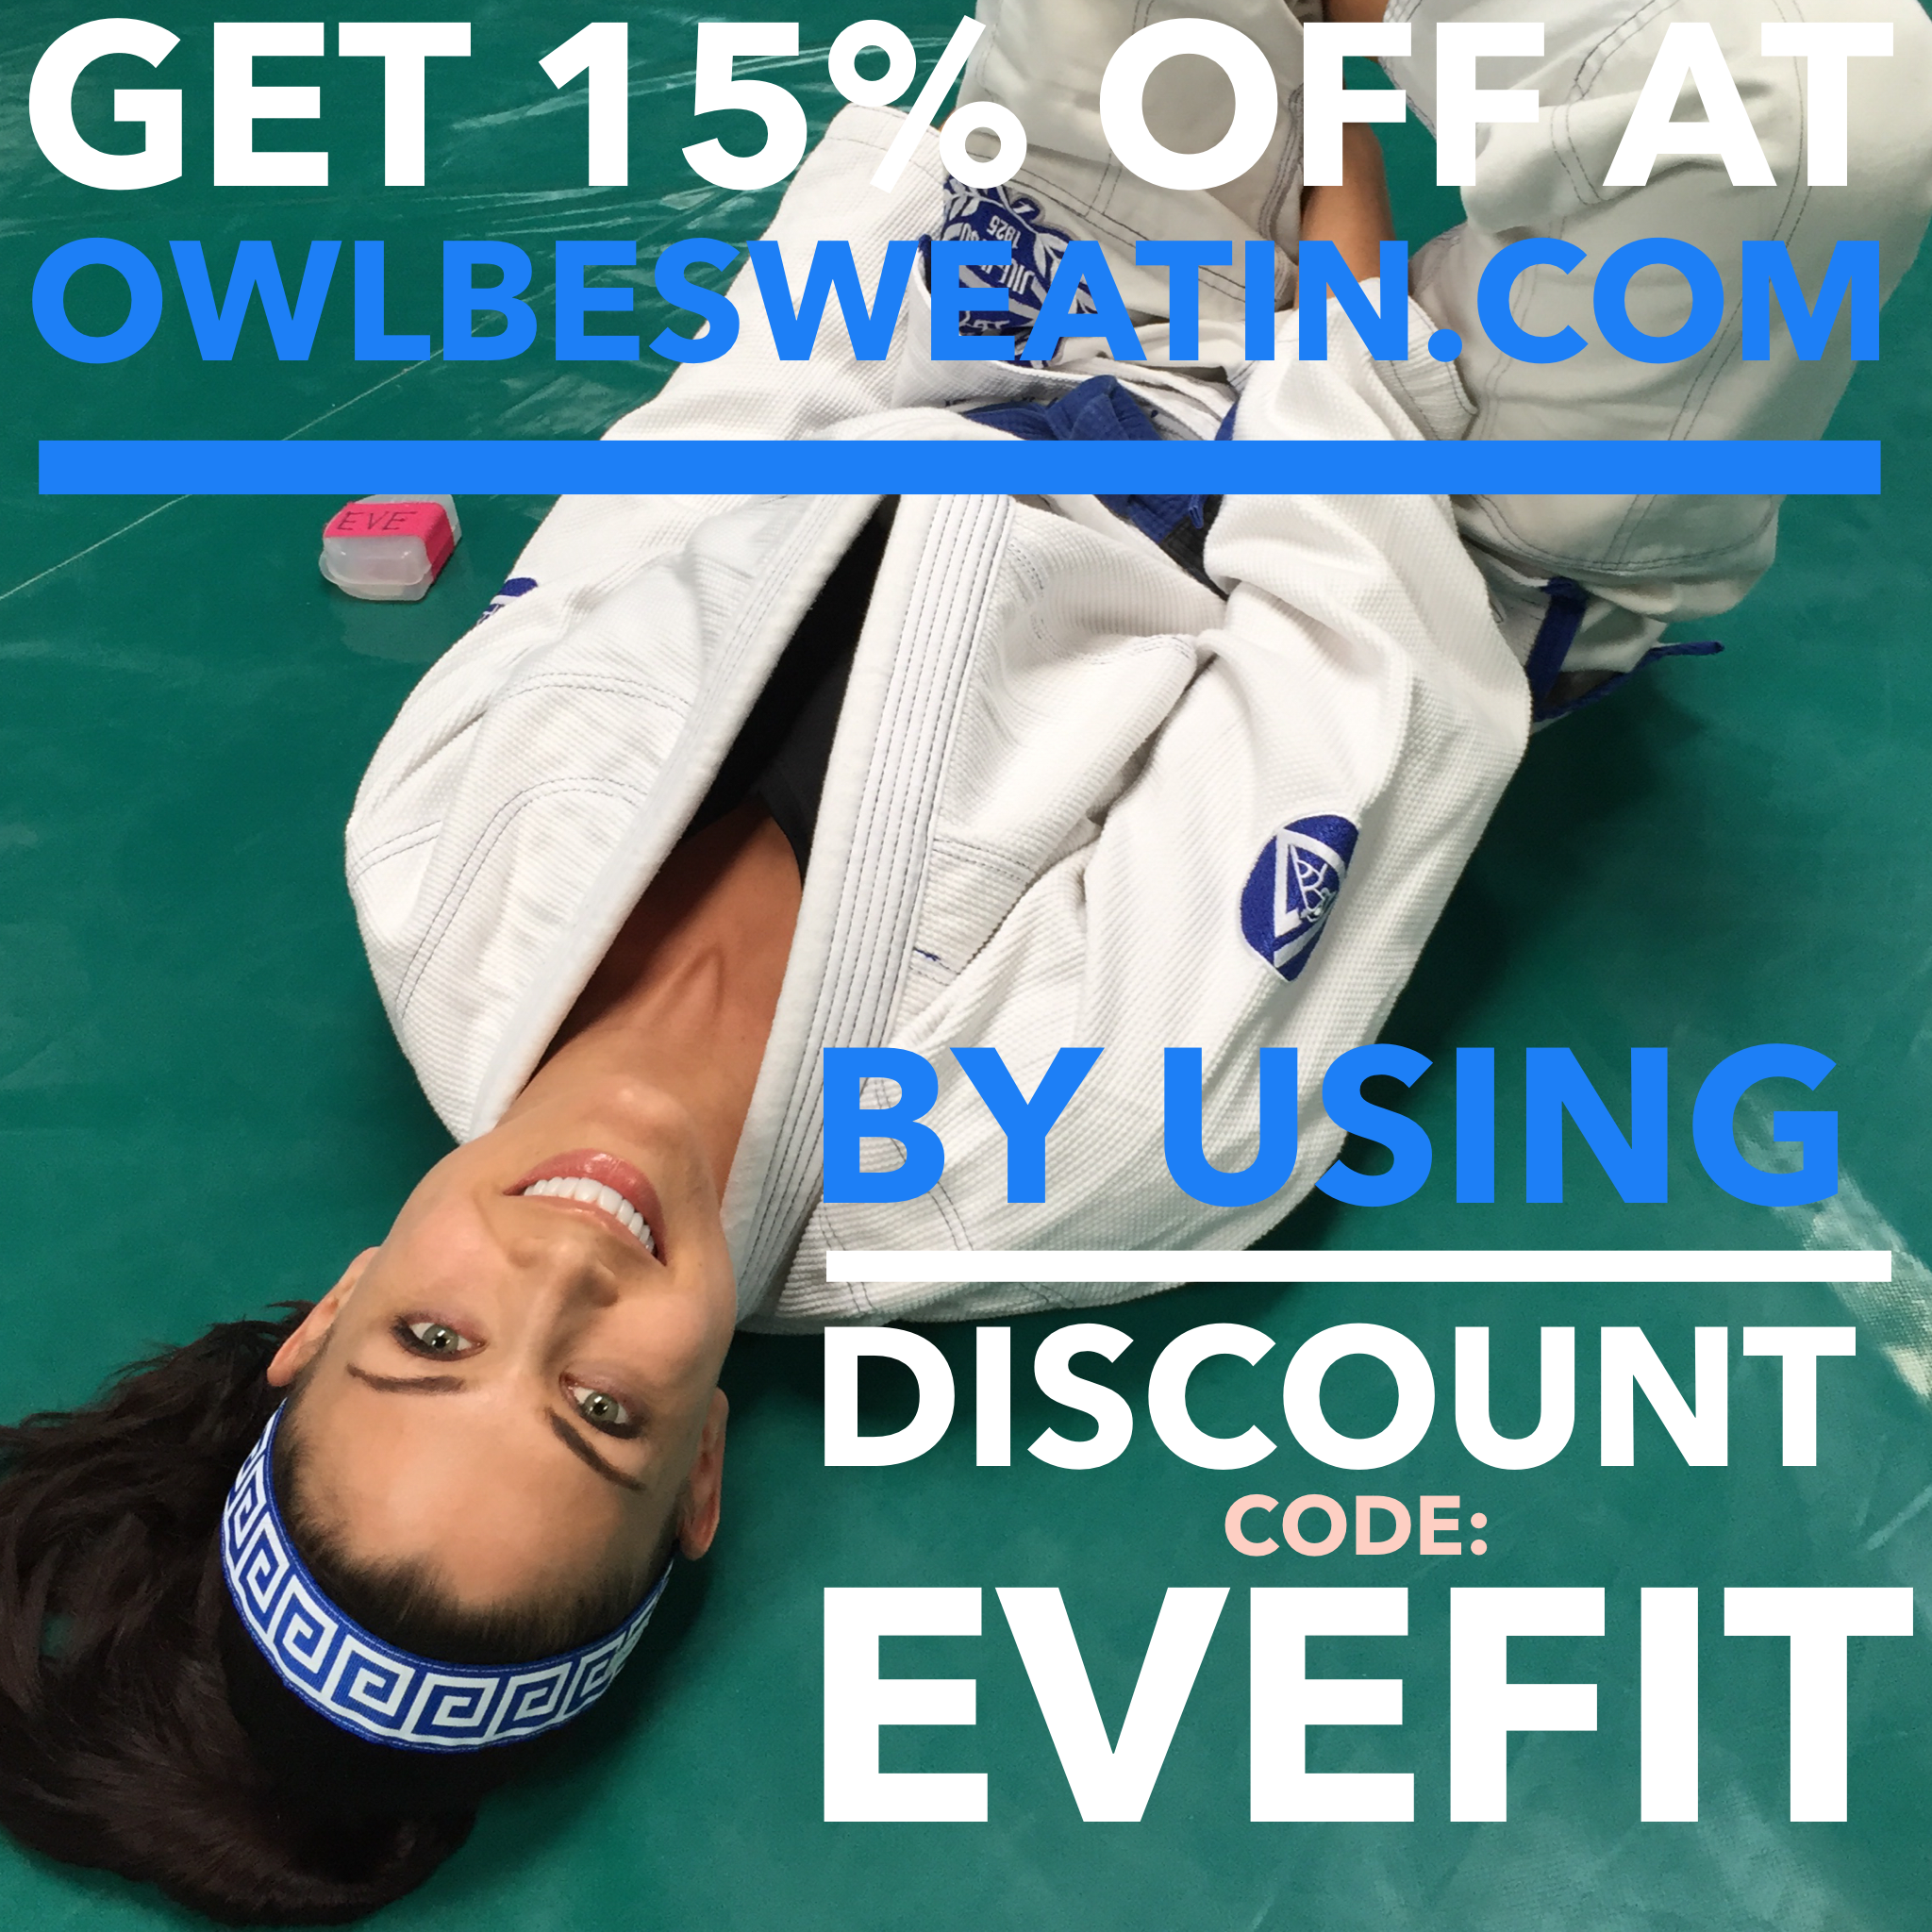 Amazing Owl Be Sweatin' Discount Offer!